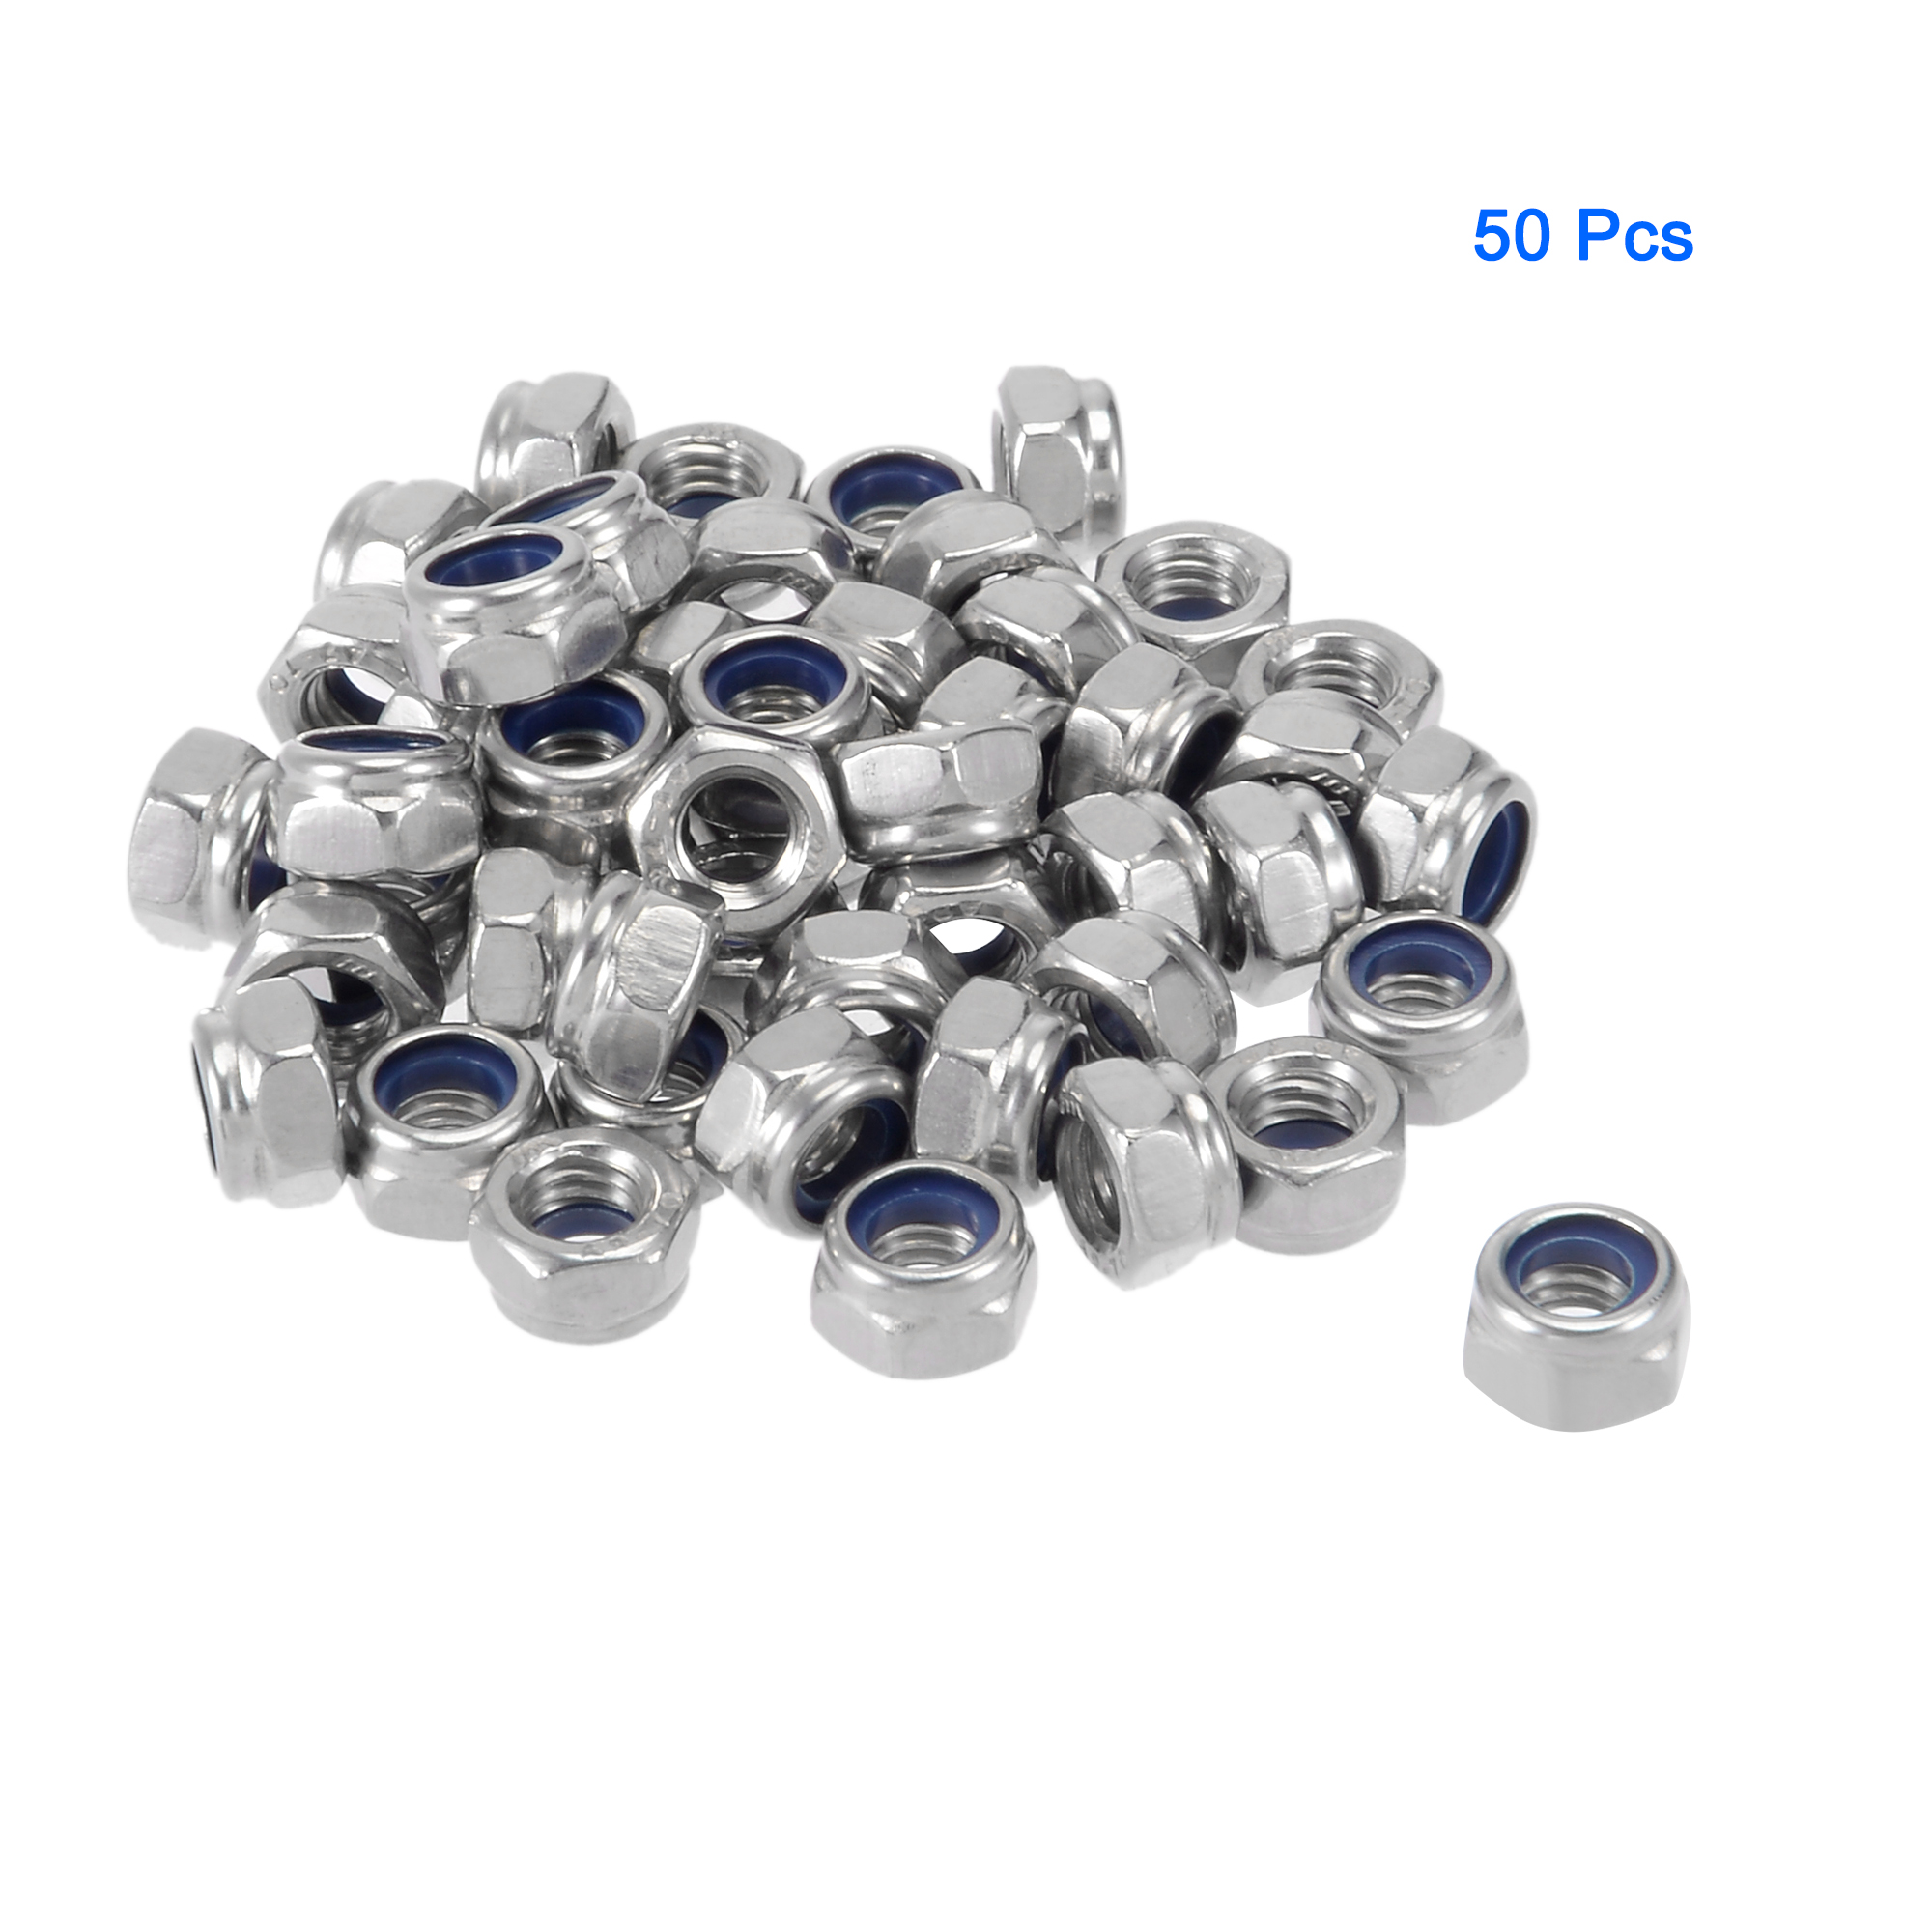 M5 x 0.8mm 304 Stainless Steel Nylock Nylon Insert Hex Lock Nuts 50pcs